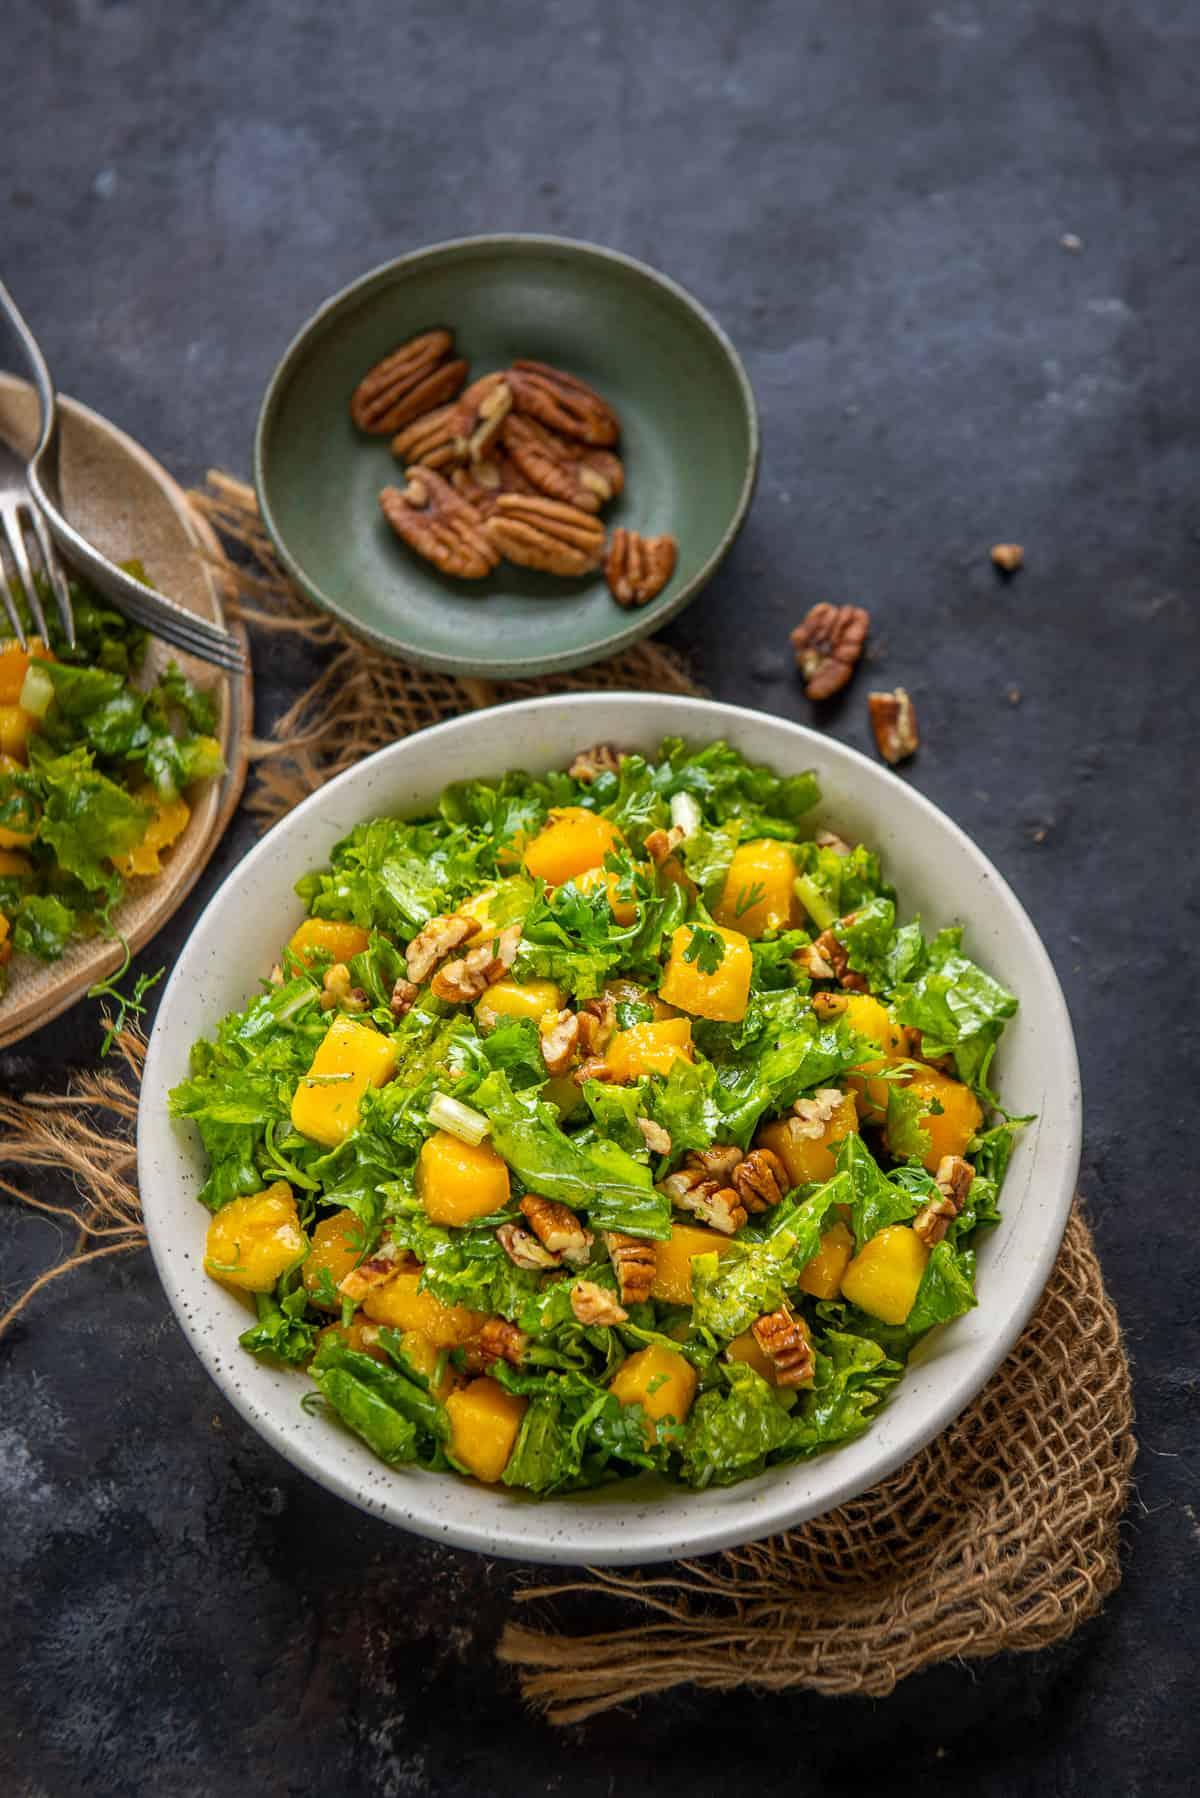 Kale Mango Salad served in a bowl.